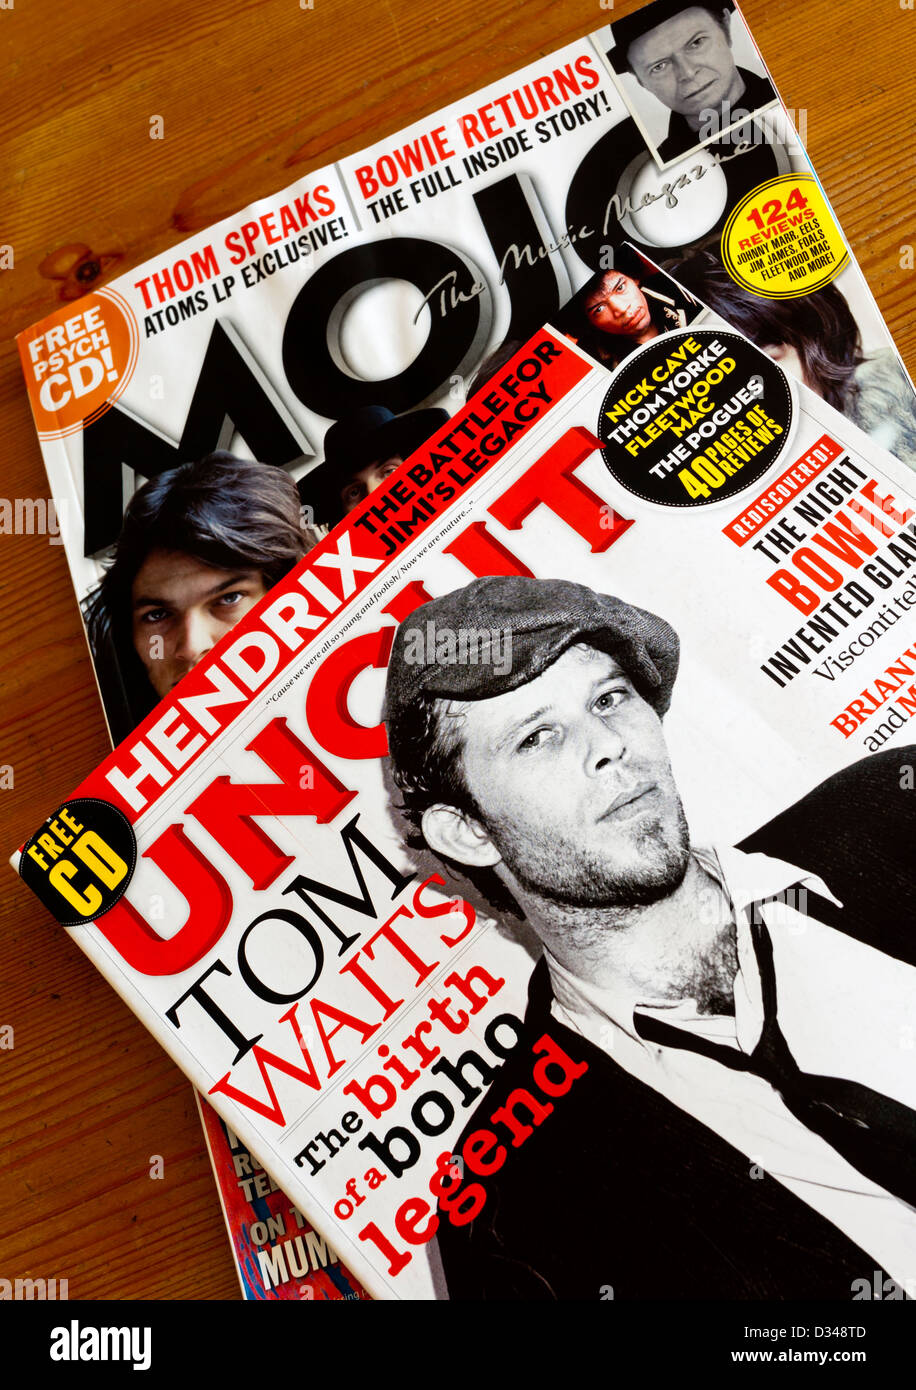 Close-up-view-of-Mojo-and-Uncut-monthly-